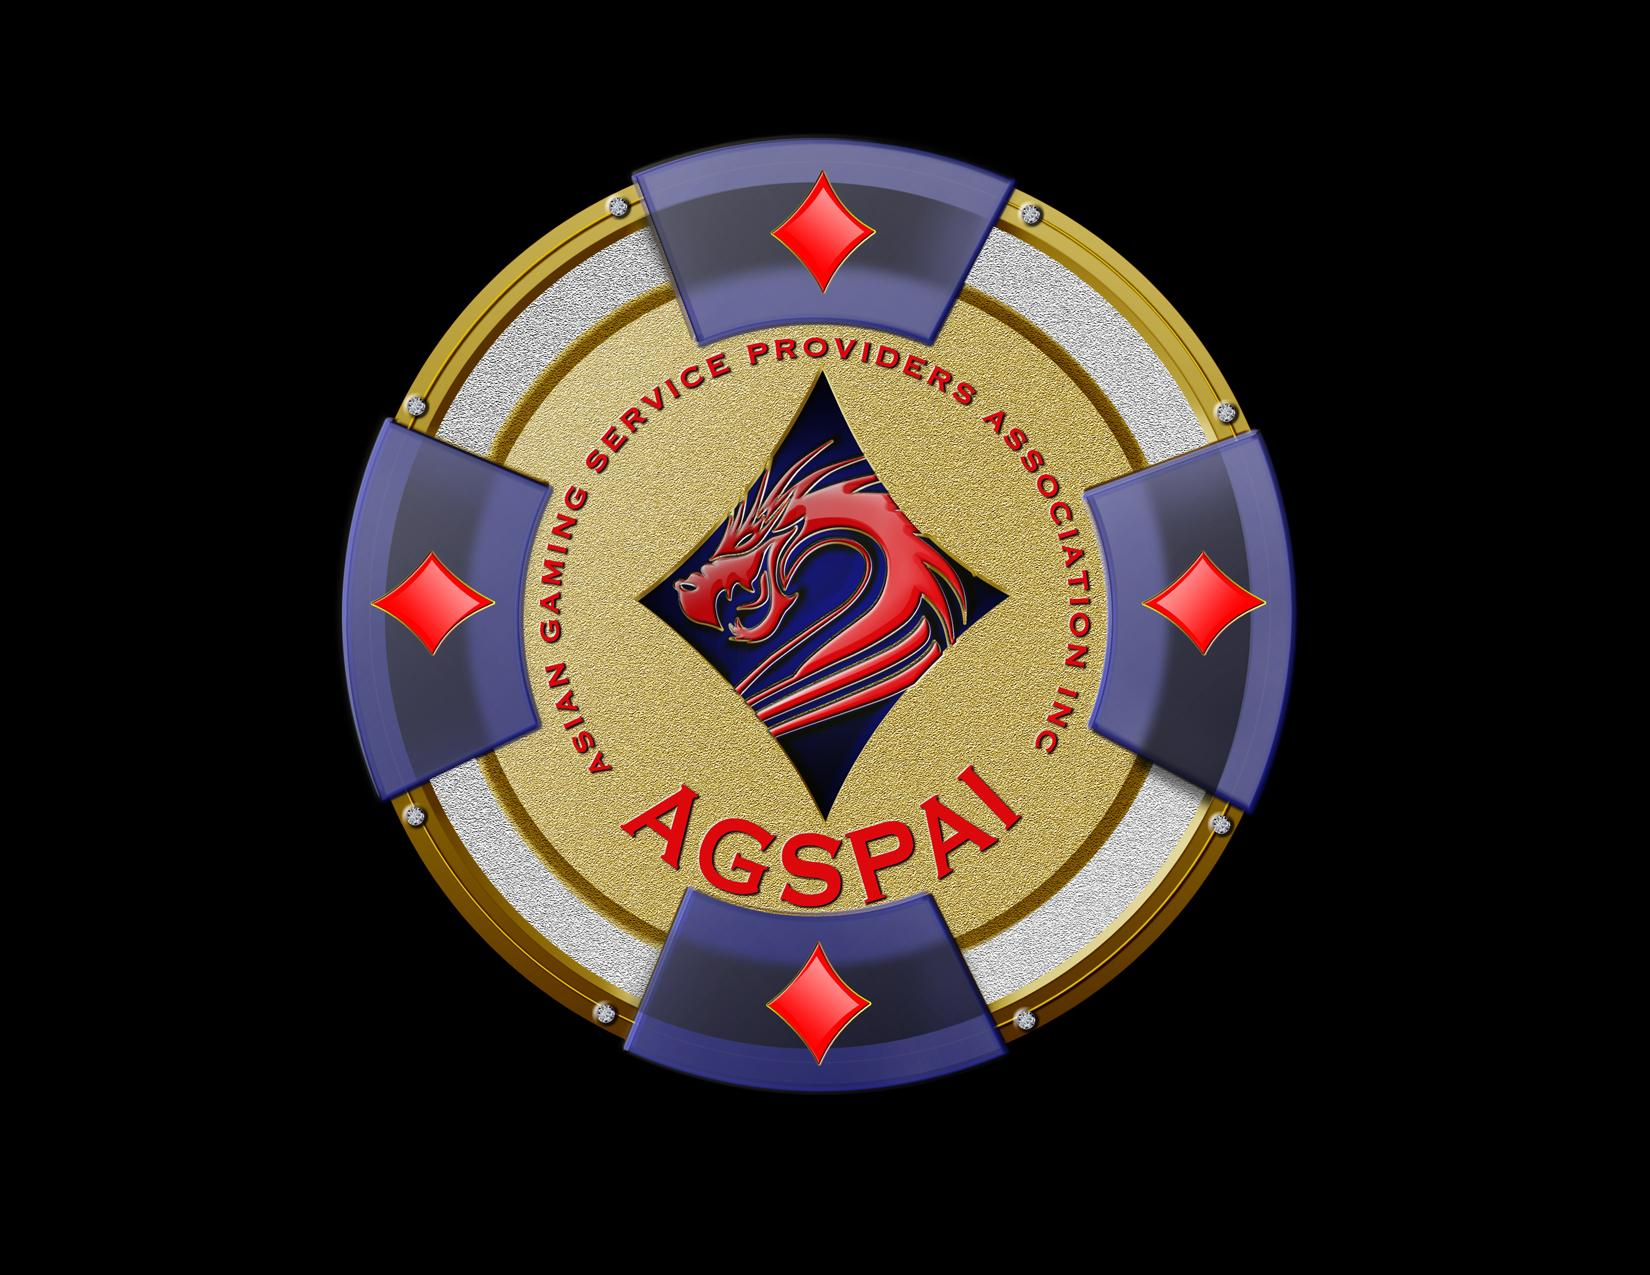 Asian Gaming Service Providers Association (AGSPA), Inc.